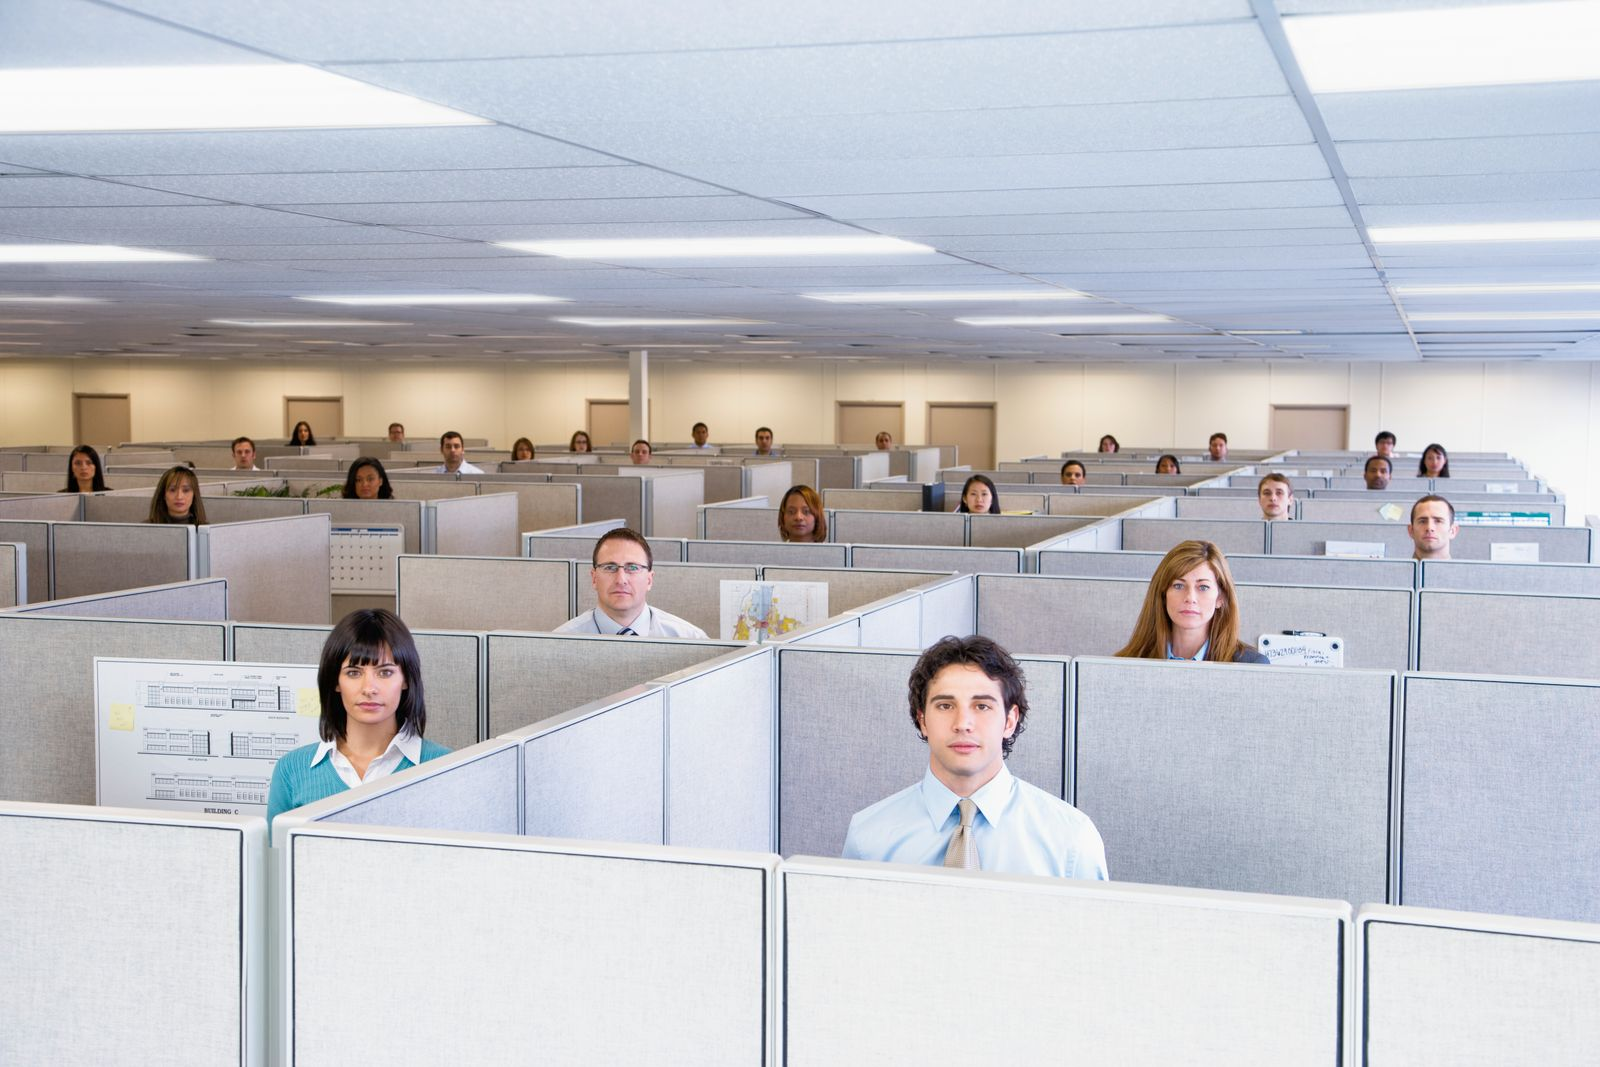 Large group of office workers, each standing in own cubicle, looking at camera, elevated view